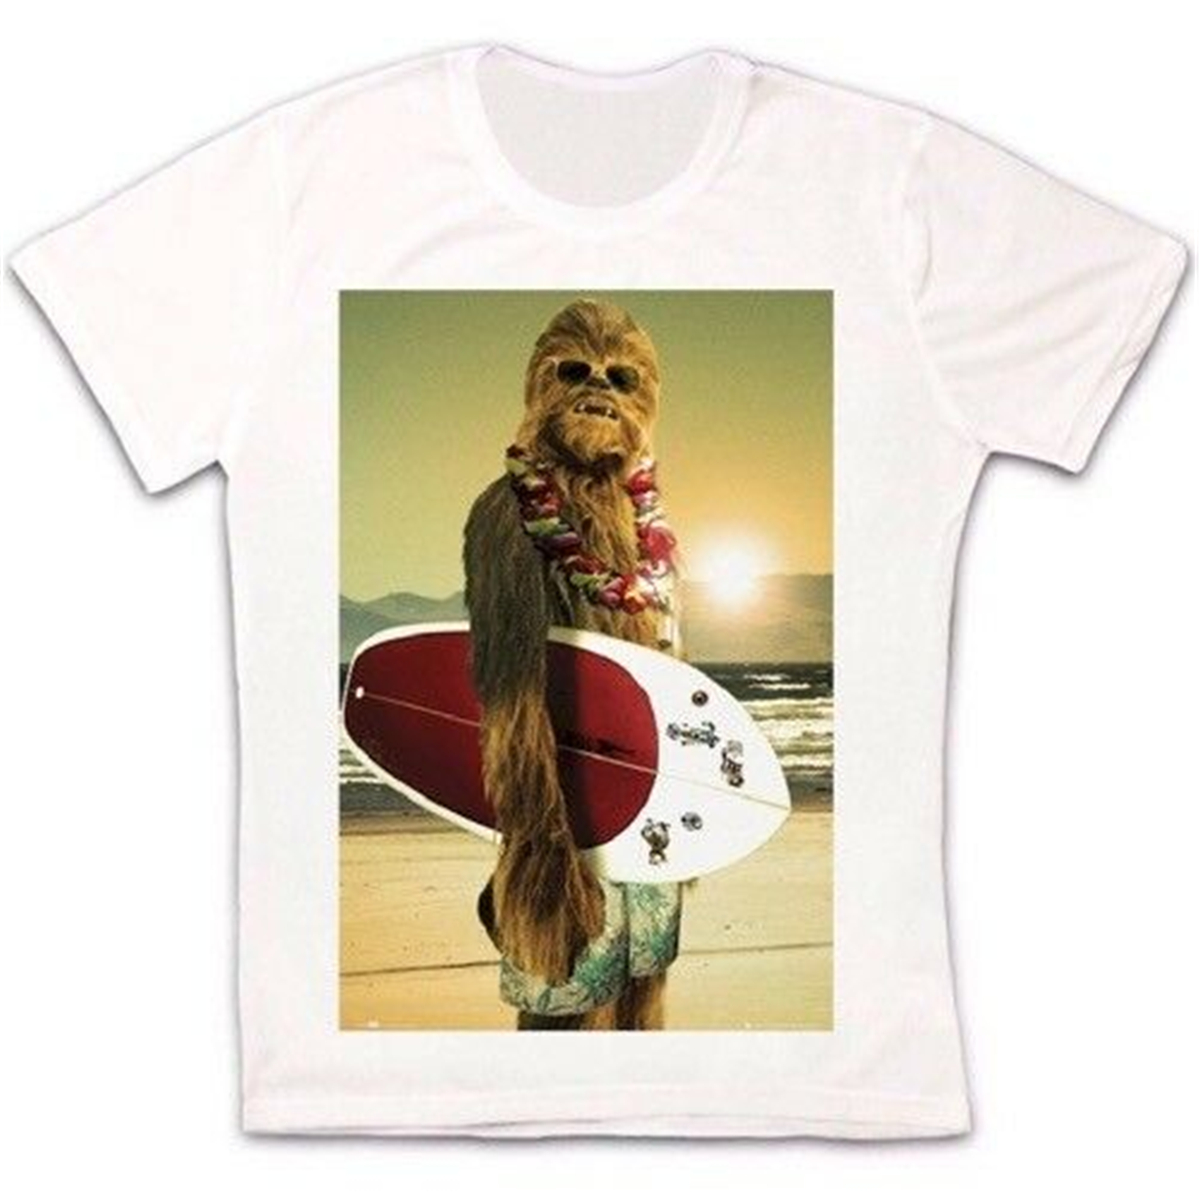 Chewbacca From Star Wars Surfing T-Shirt Homme